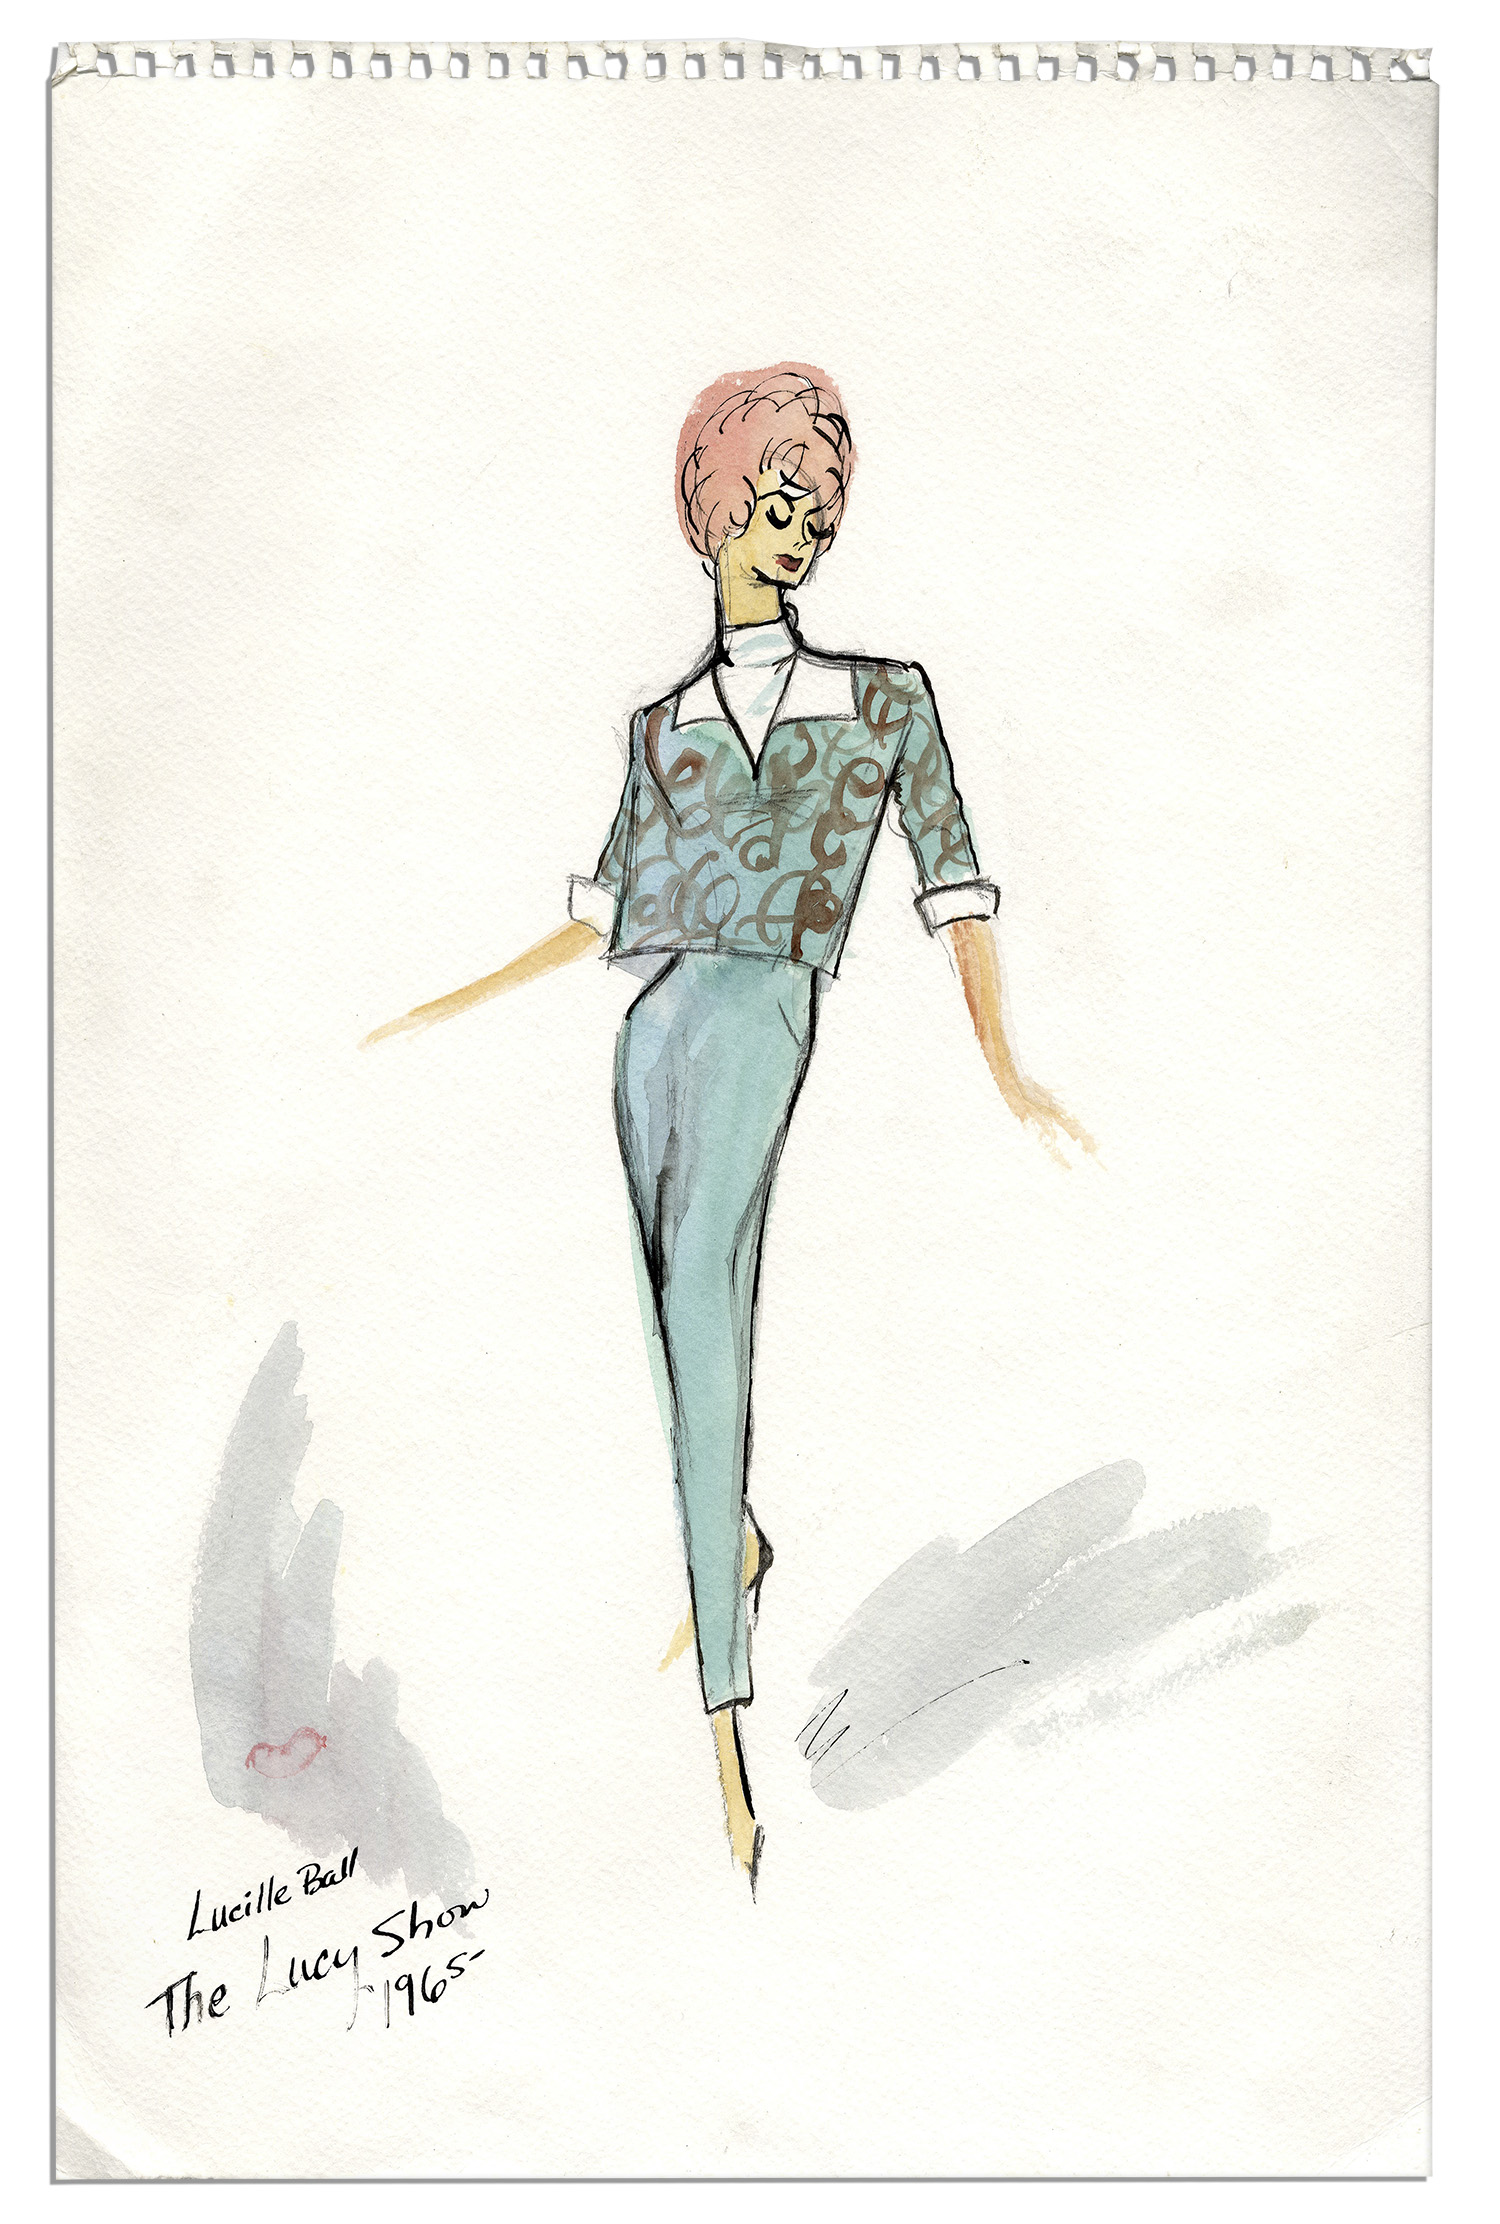 lot detail edith head costume sketch for lucille ball in